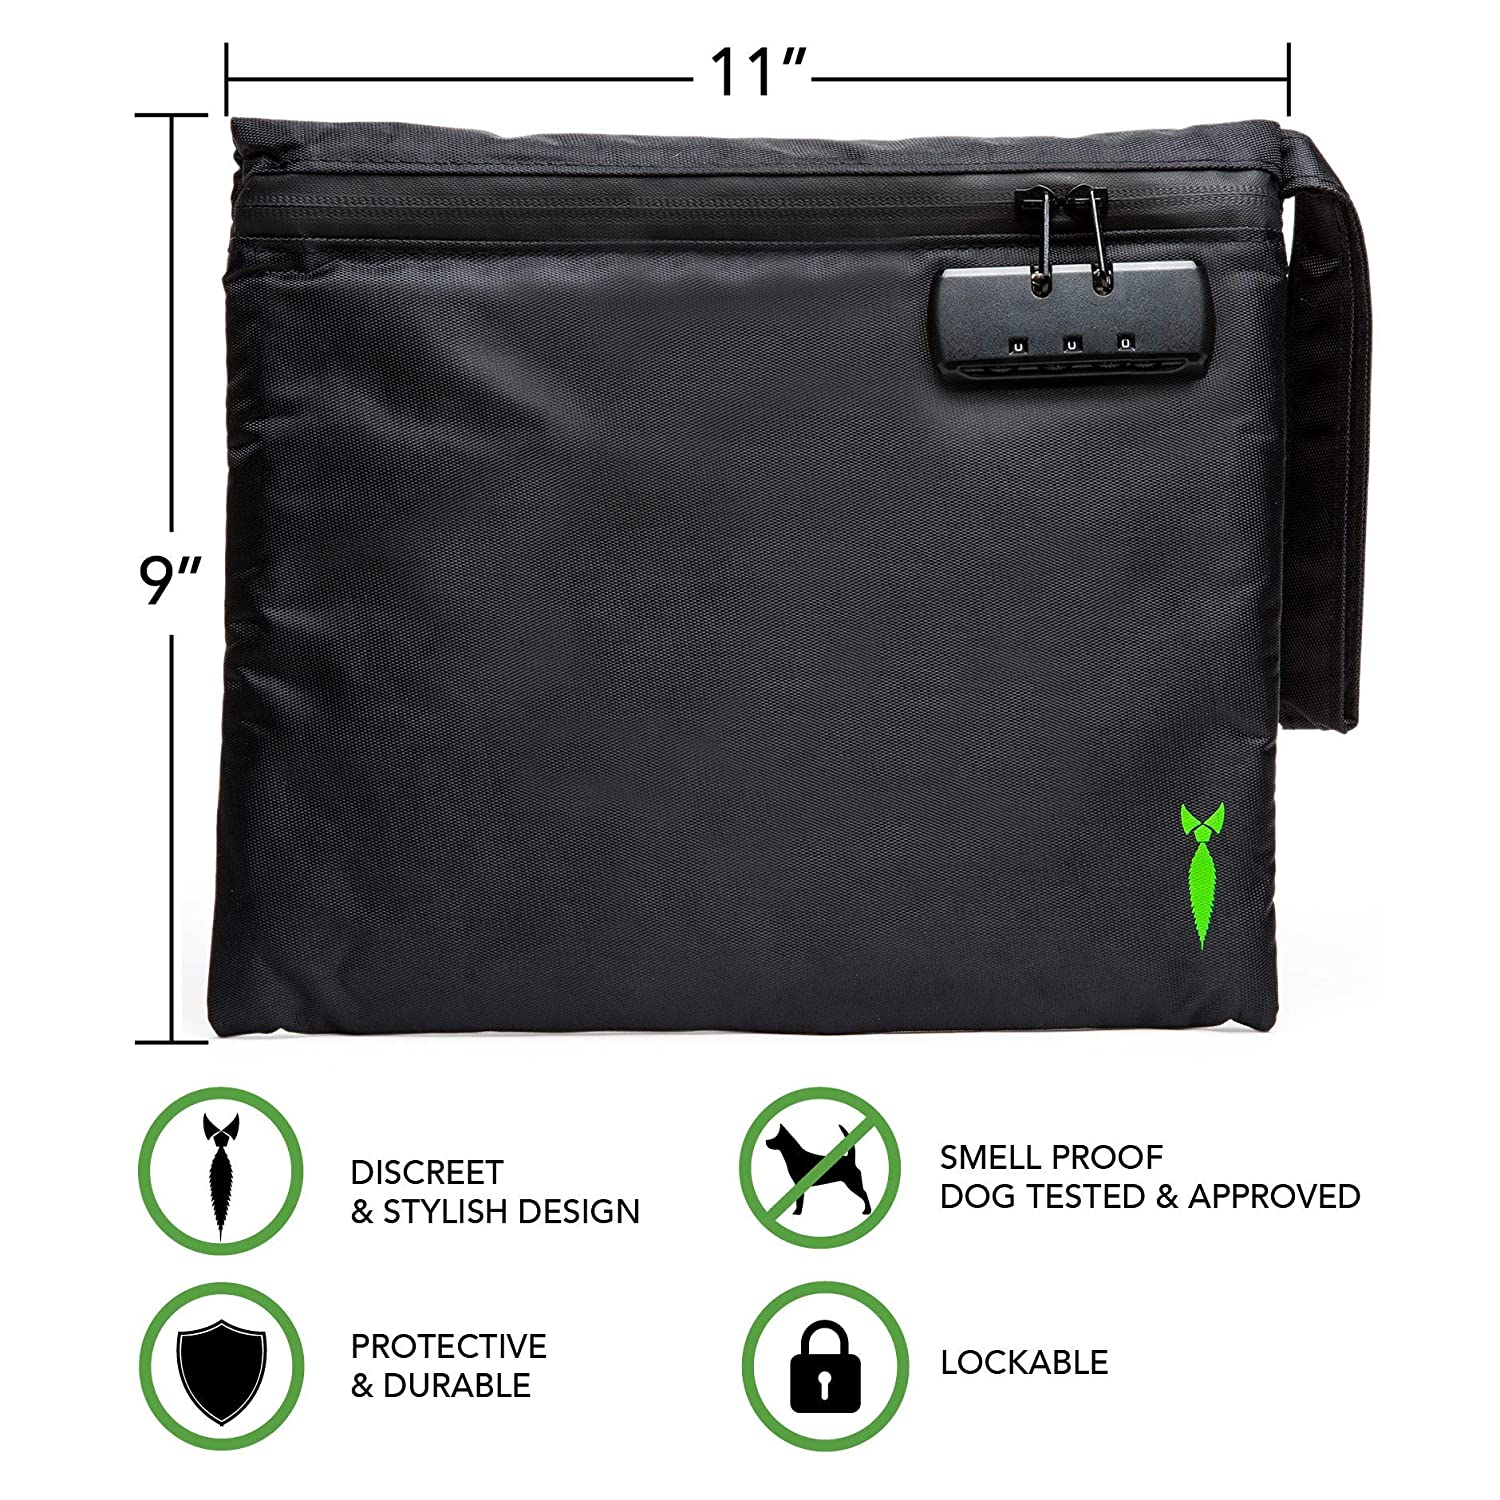 e1d8b60da086 Discreet Smell Proof Bag 2.0 with Combo Lock - Odor Locking Storage  Container